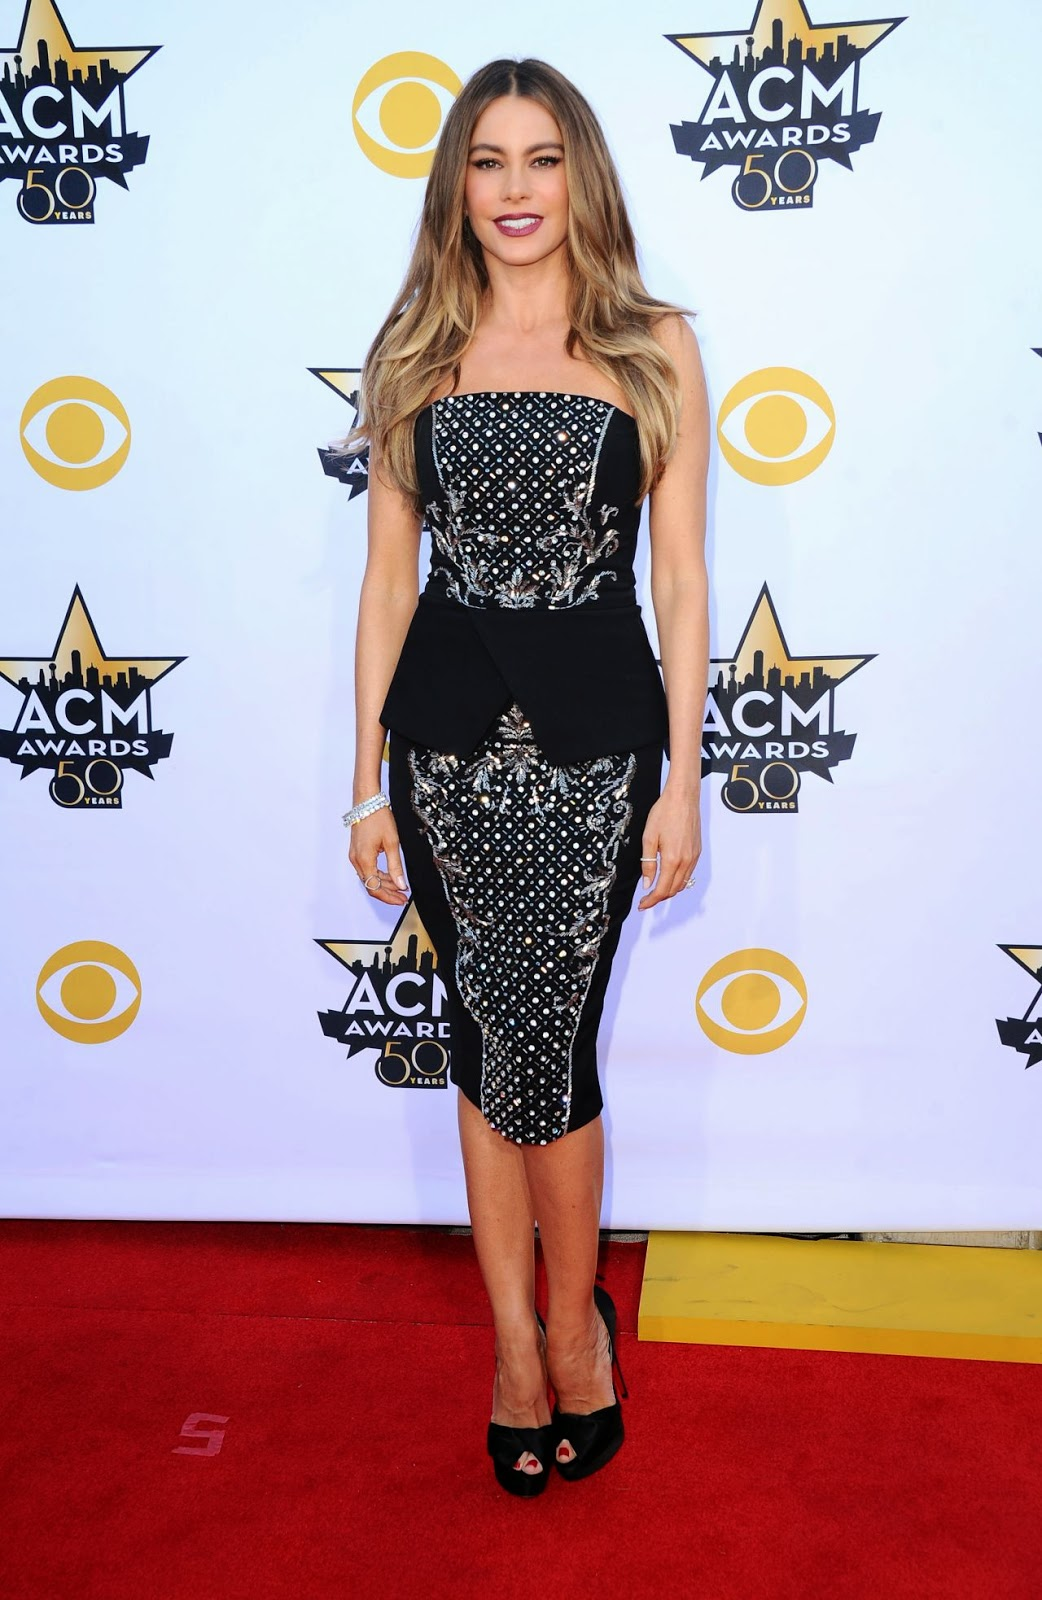 Sofia Vergara in a strapless peplum dress at the 2015 ACM Awards